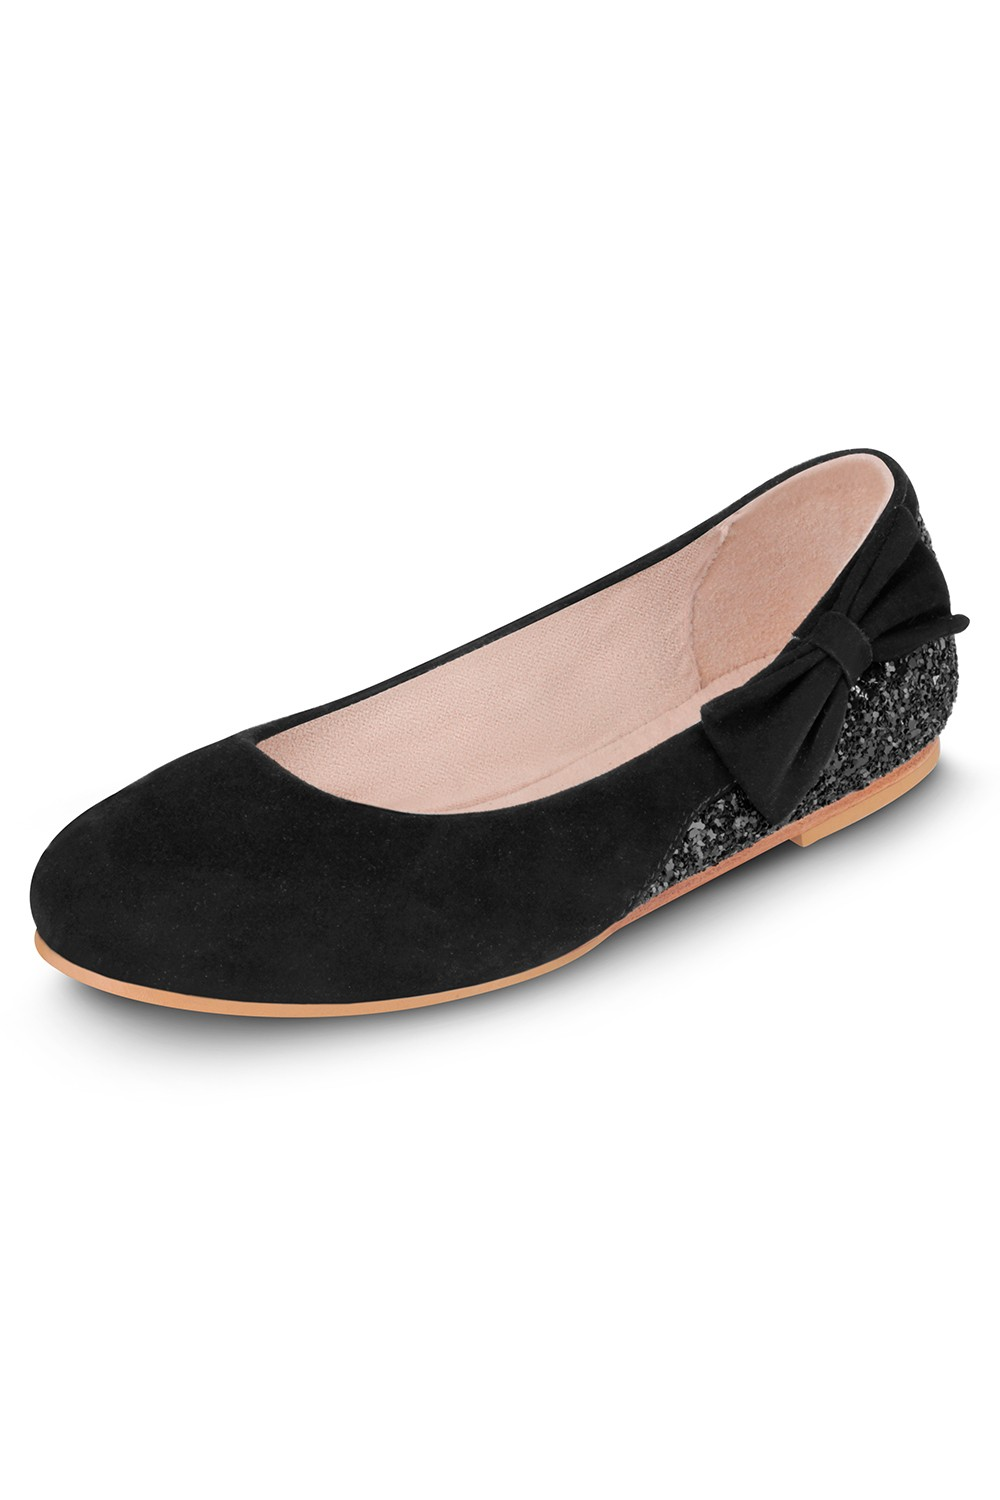 Nadeen Girls Fashion Shoes